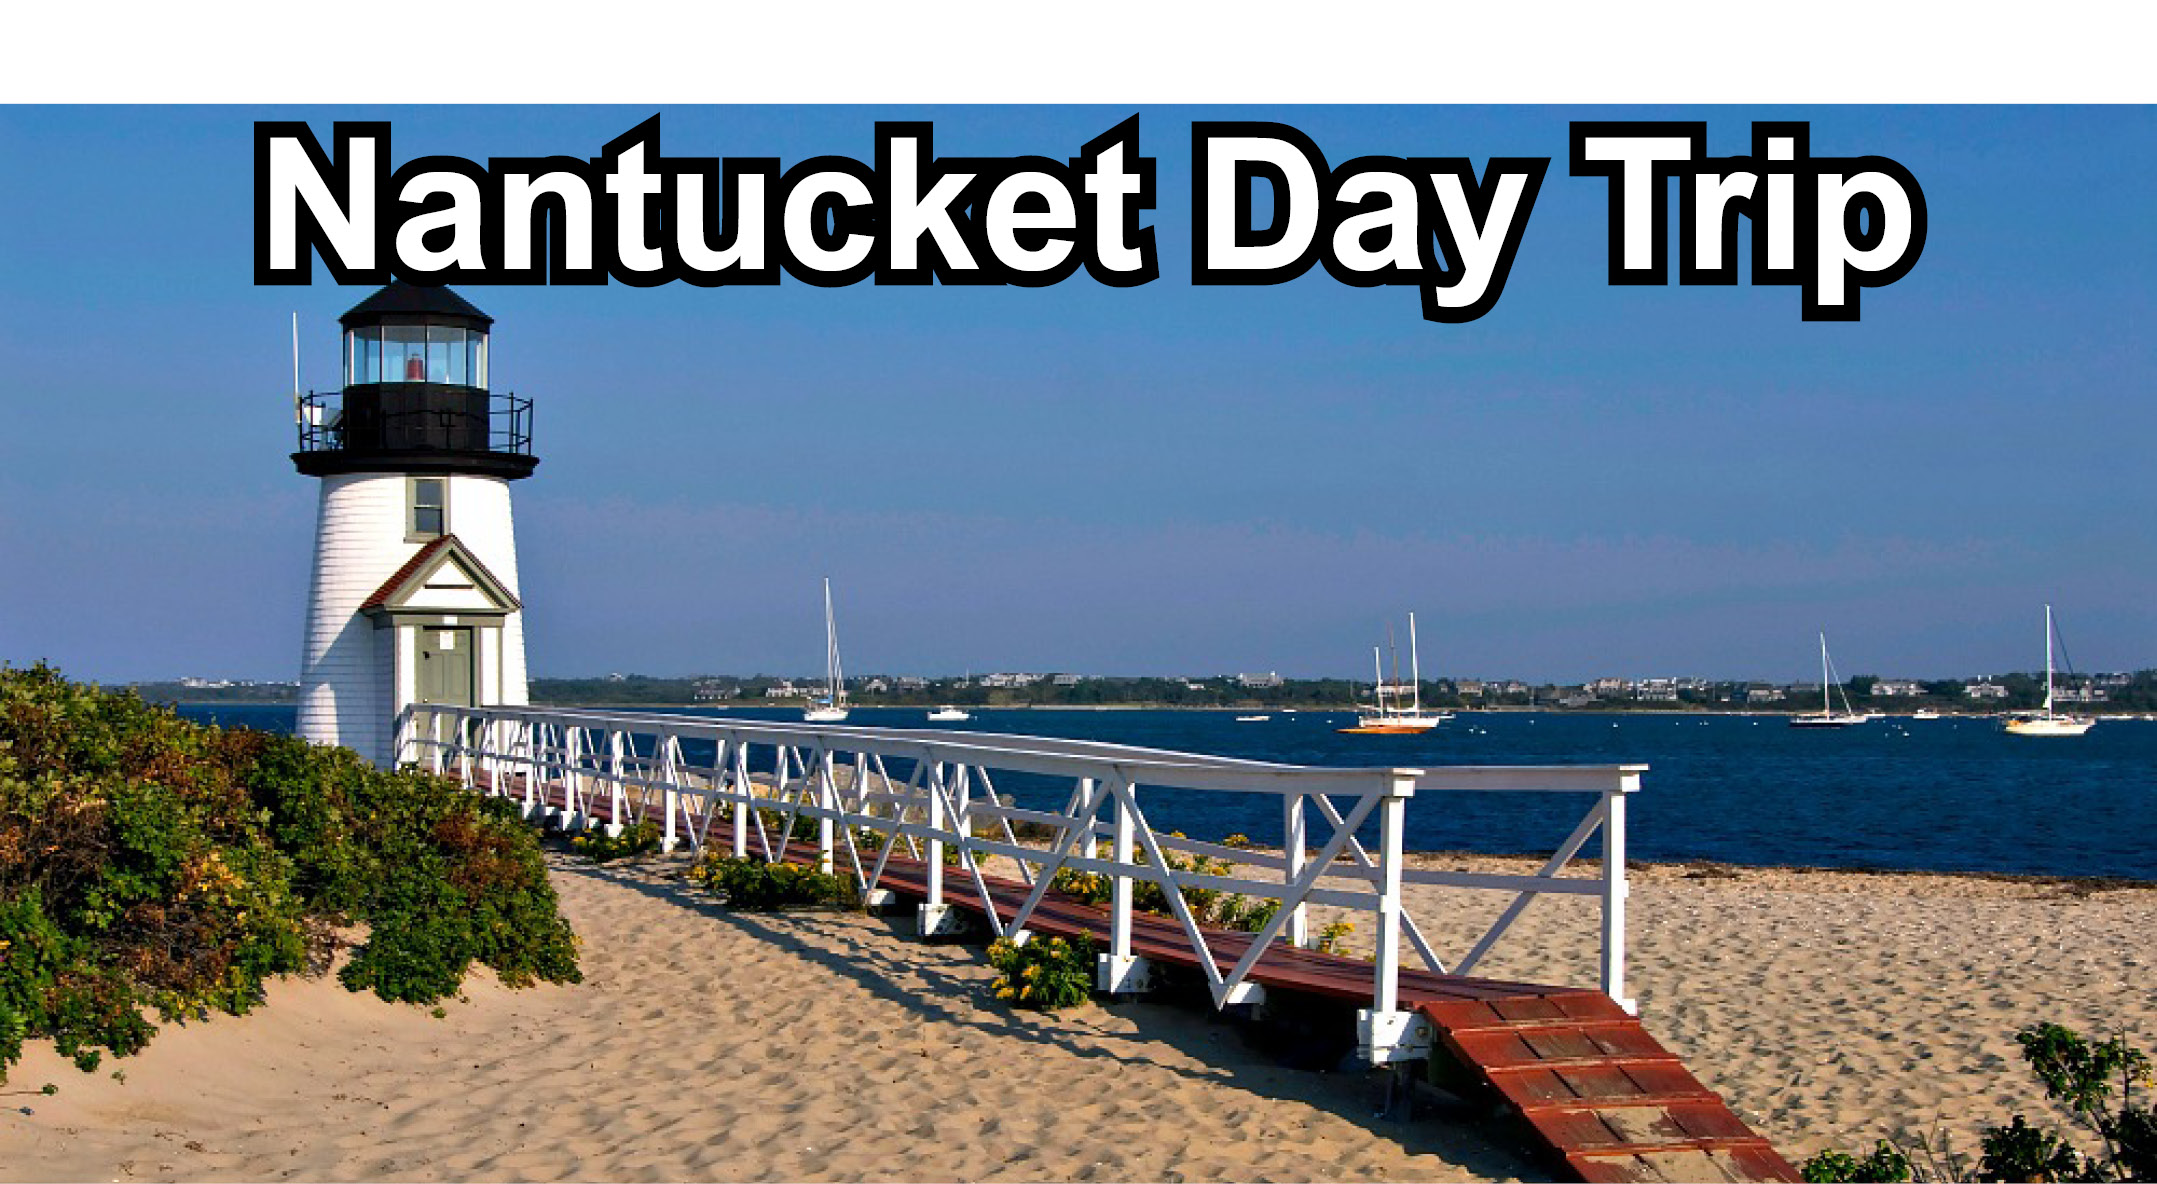 Nantucket Day Trip | July and August 2019